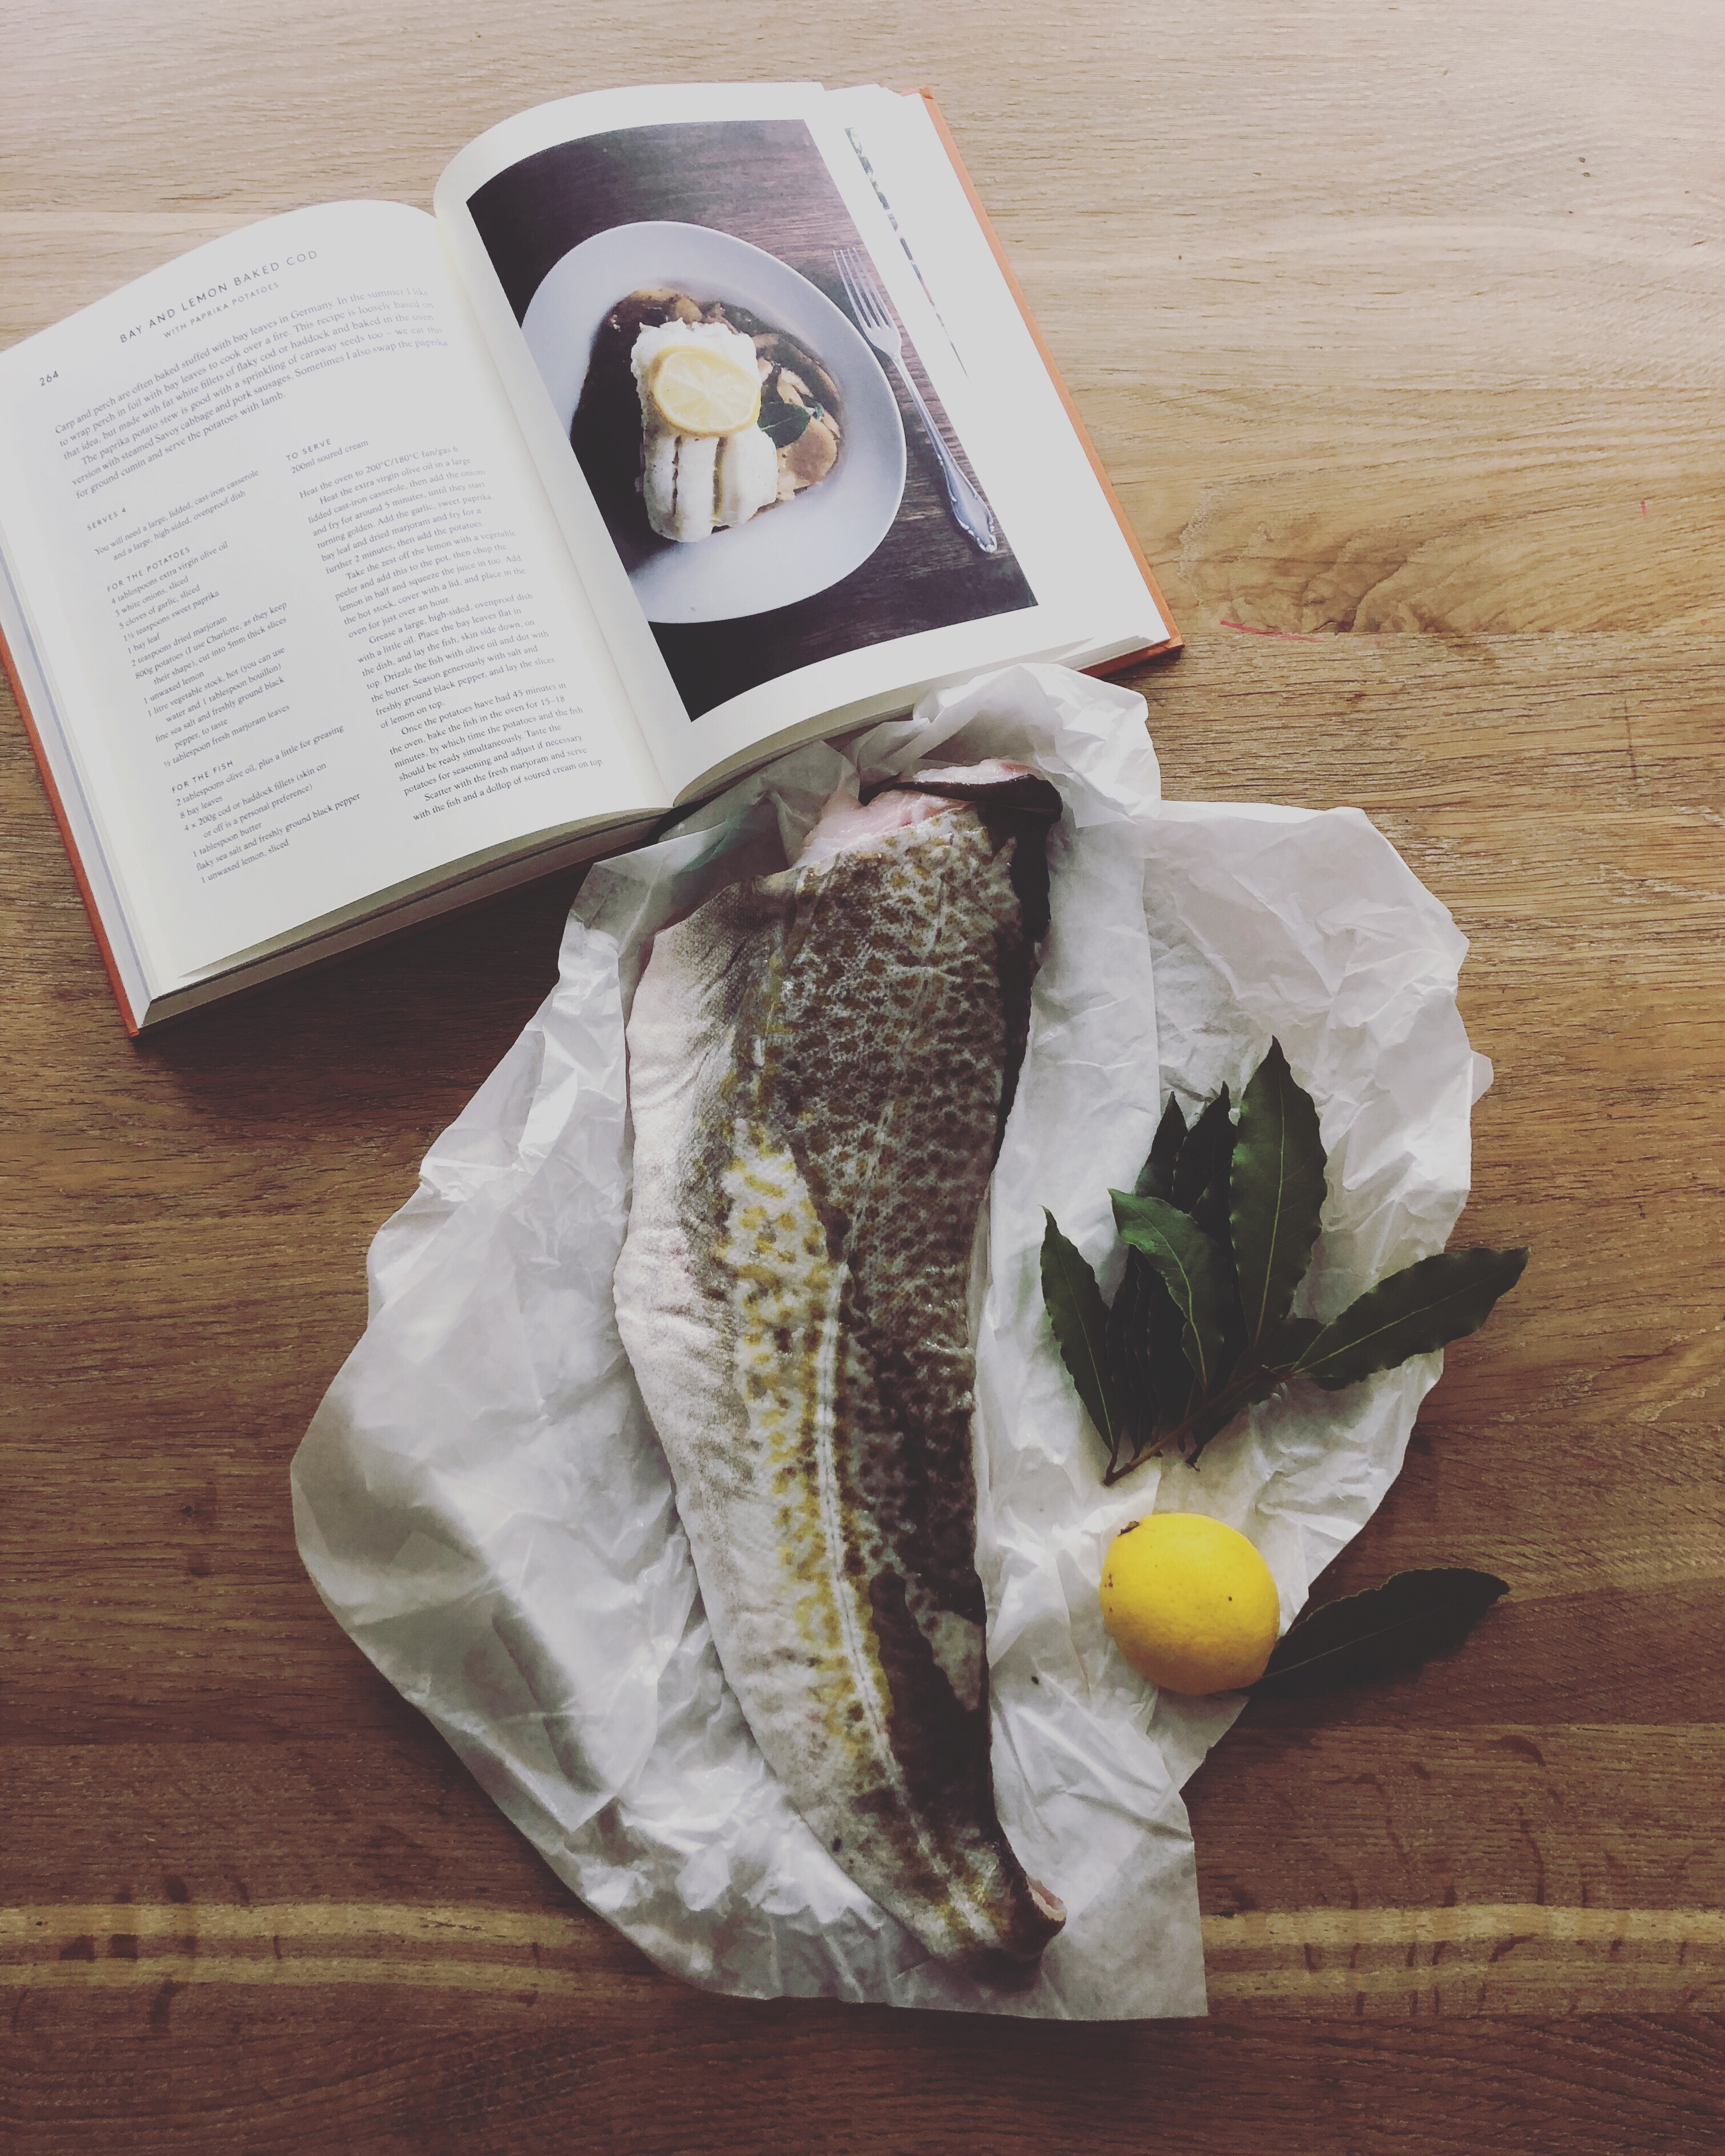 Cooking from cookbooks | Anja Dunk's Bay and lemon baked